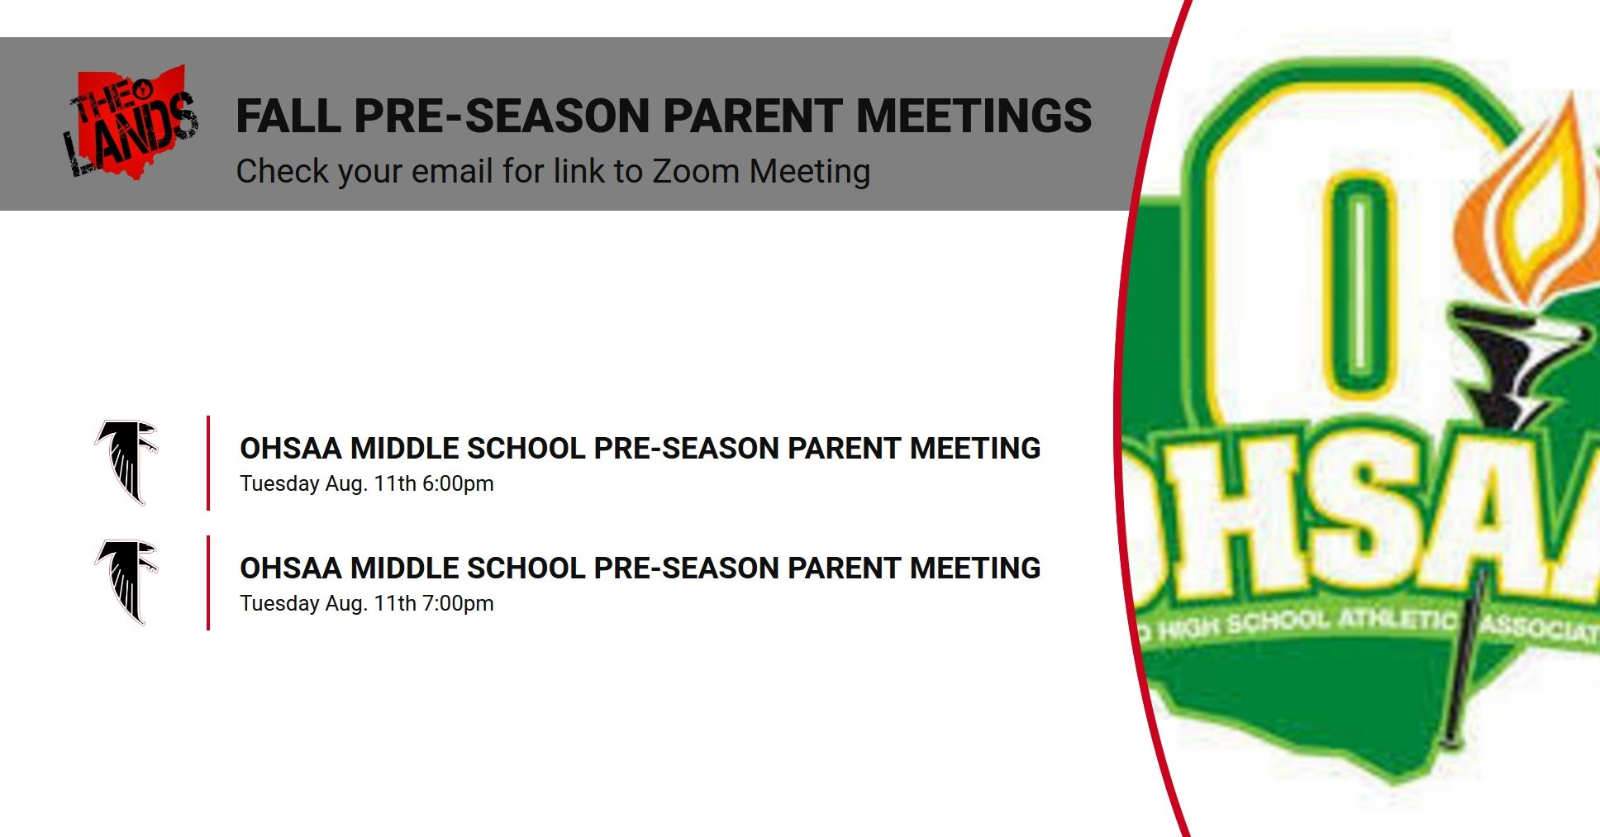 Fall 2020 OHSAA Pre-Season Parent Meeting